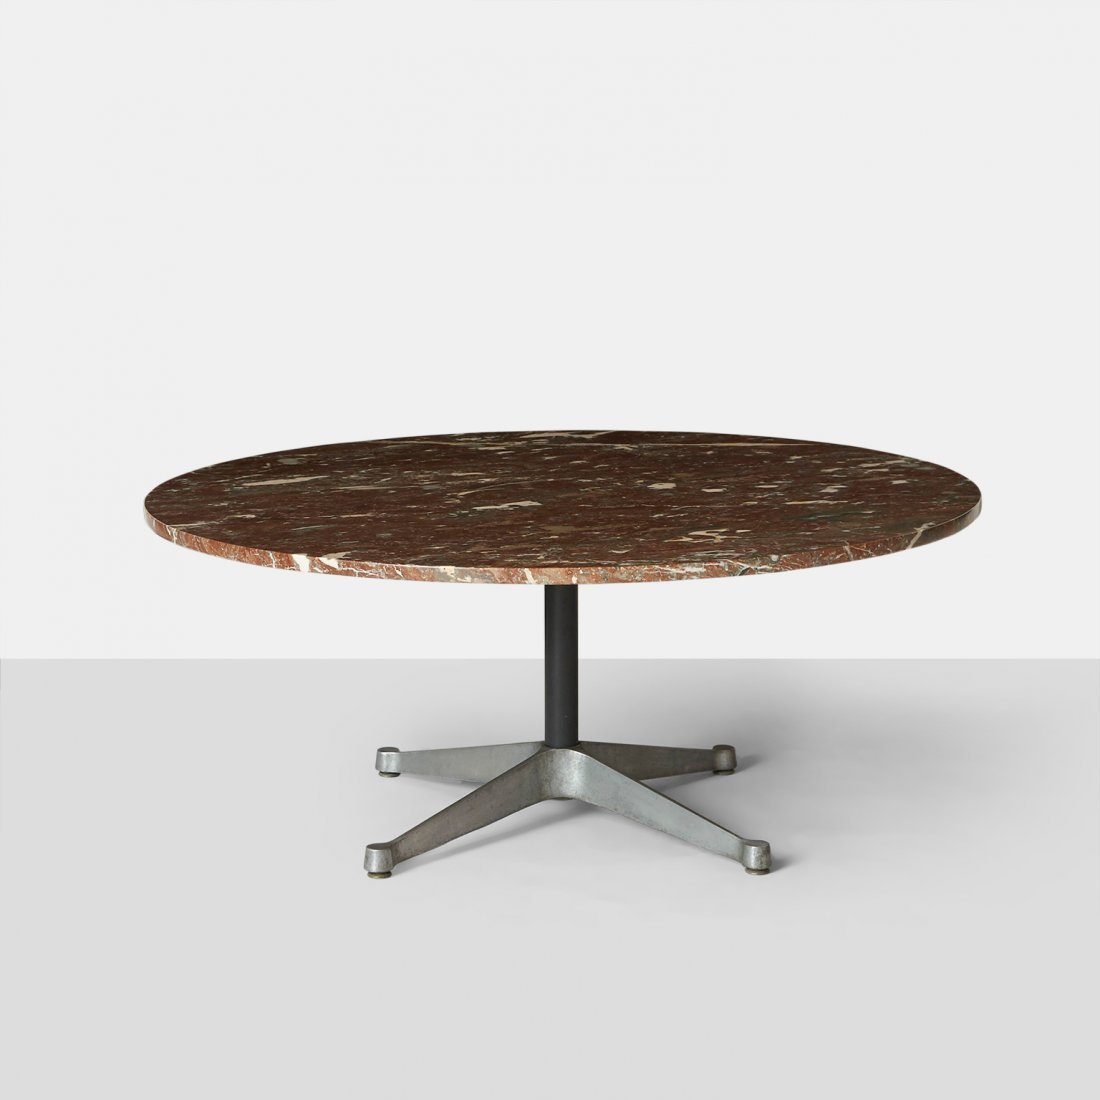 Charles and Ray Eames, Coffee Table for Herman Miller